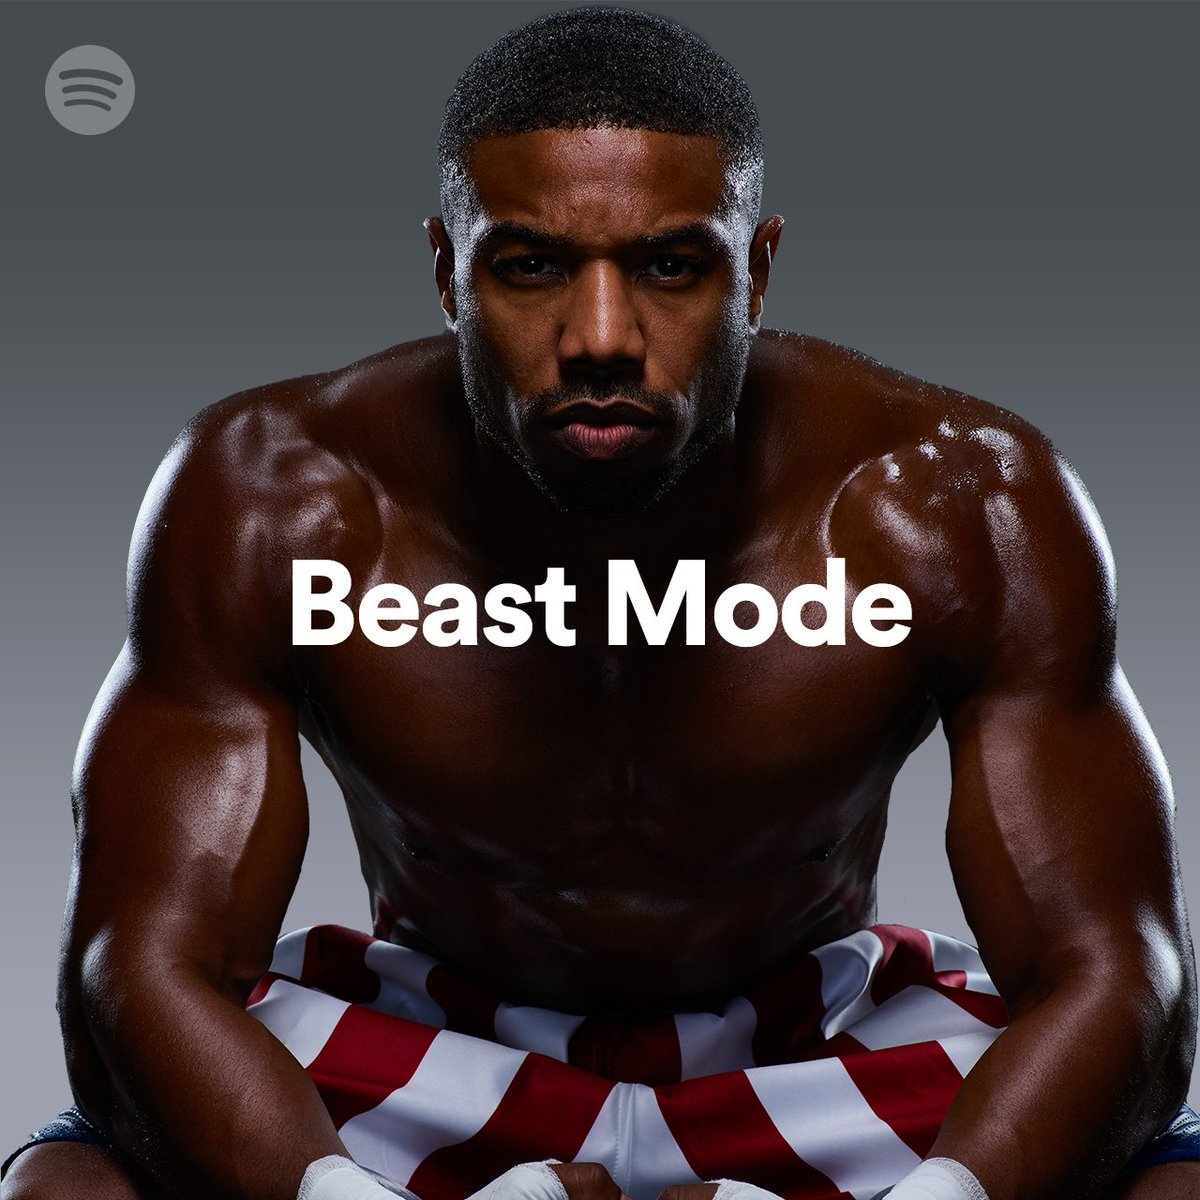 Activate your Beast Mode with @michaelb4jordan's #Creed2 playlist takeover 🥊https://t.co/RaSJJSDozZ